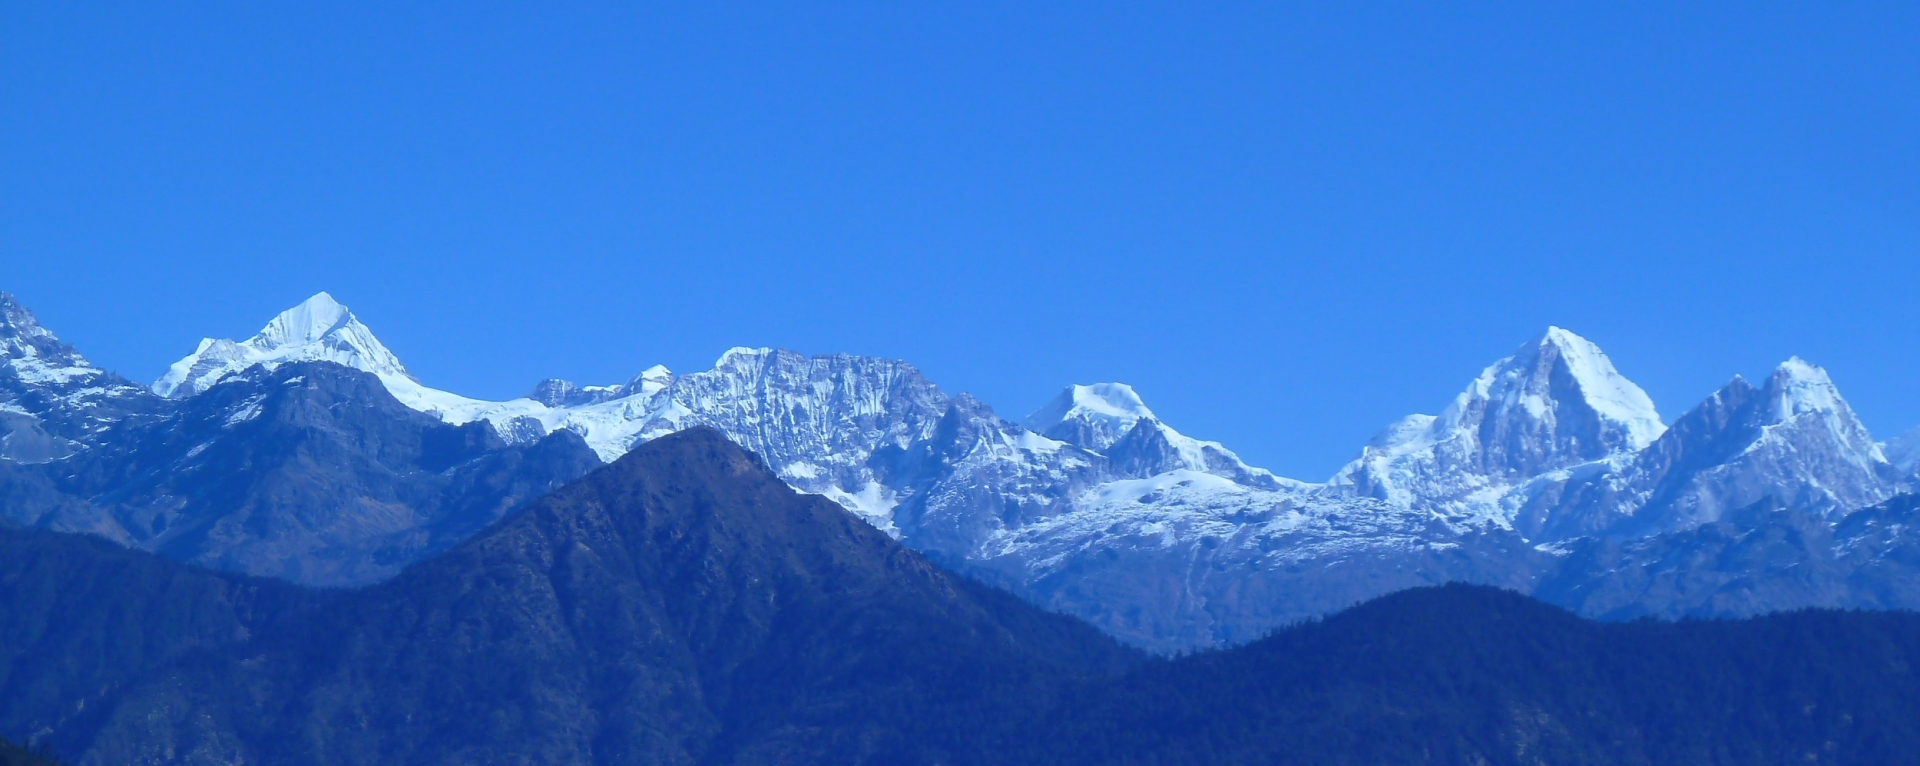 Langtang mountain ranges view from Helambu.